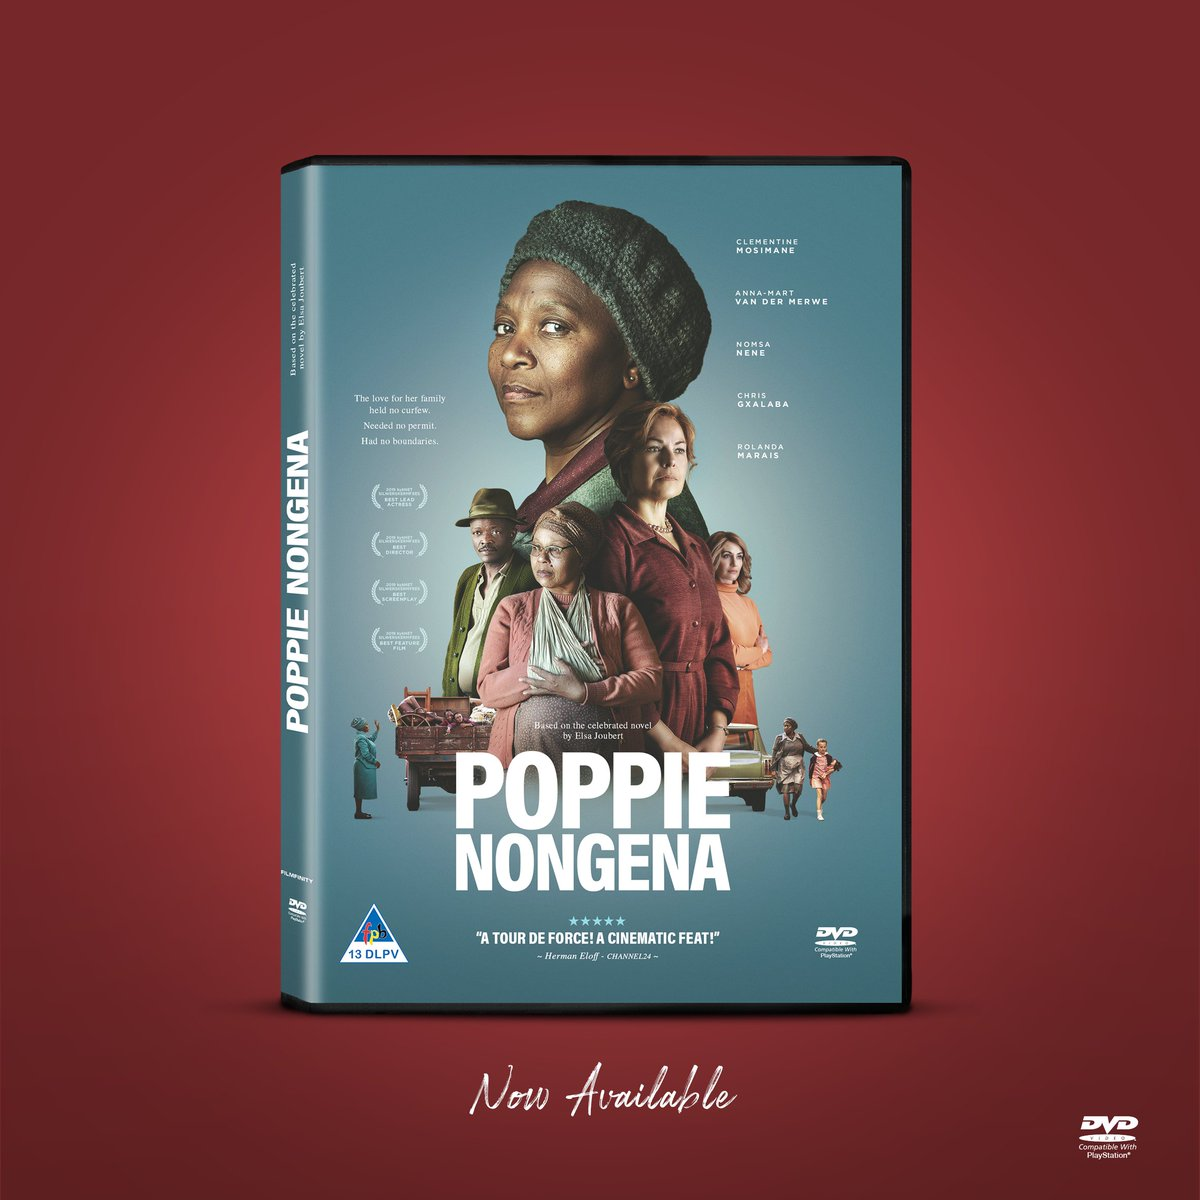 Own the incredible true-life story of #PoppieNongena.  DVD now available at all major online outlets.  #PoppieNongenaFilm #OrderOnline https://t.co/cy6MBETlHU